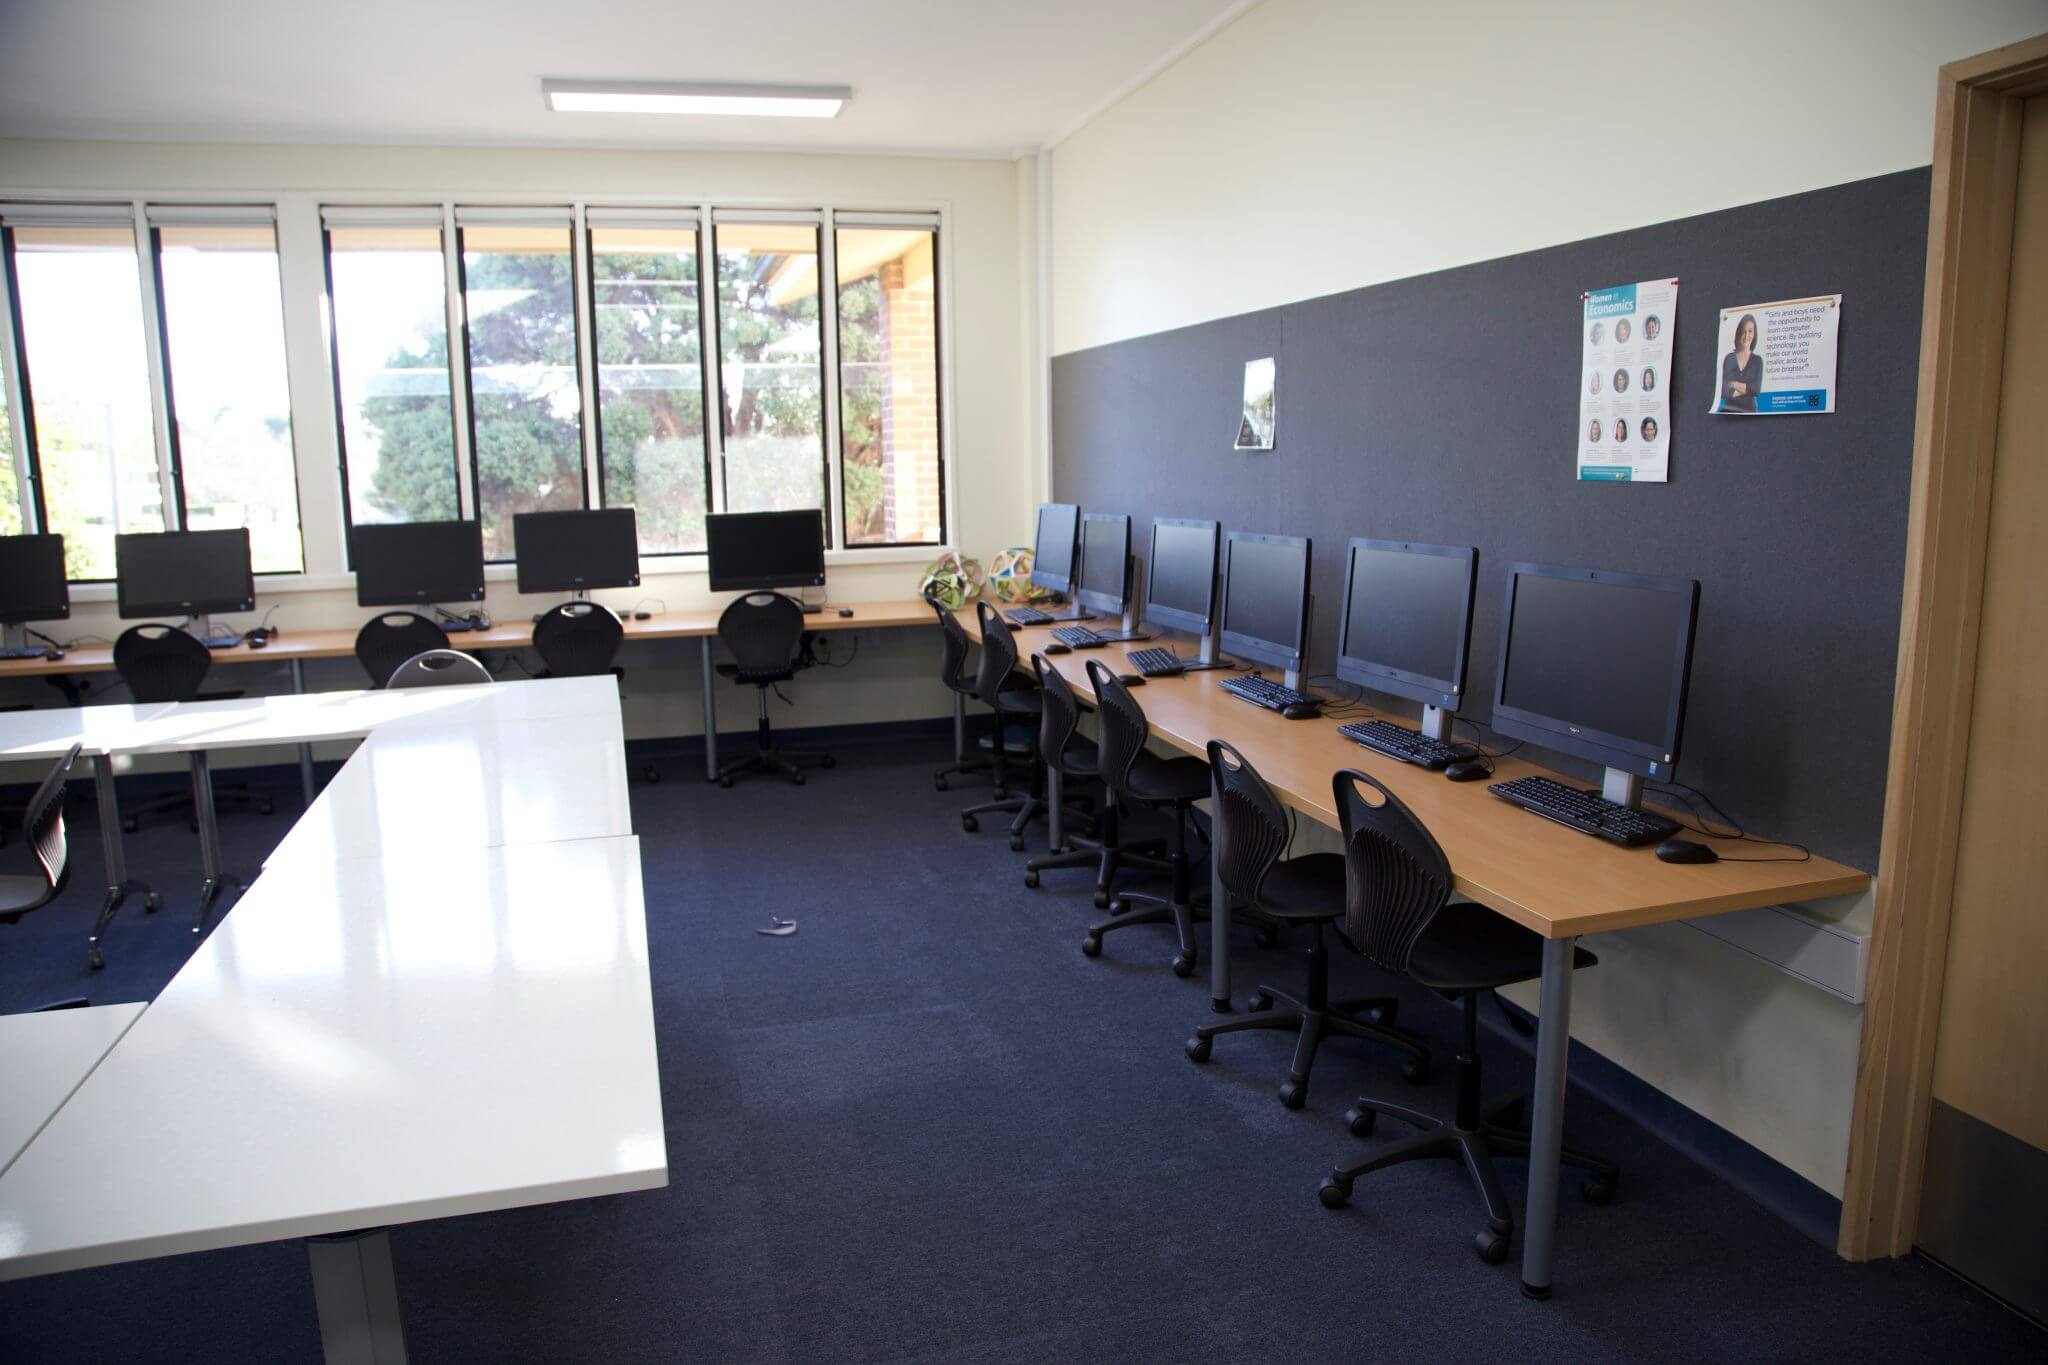 IT school classroom with desktop computers